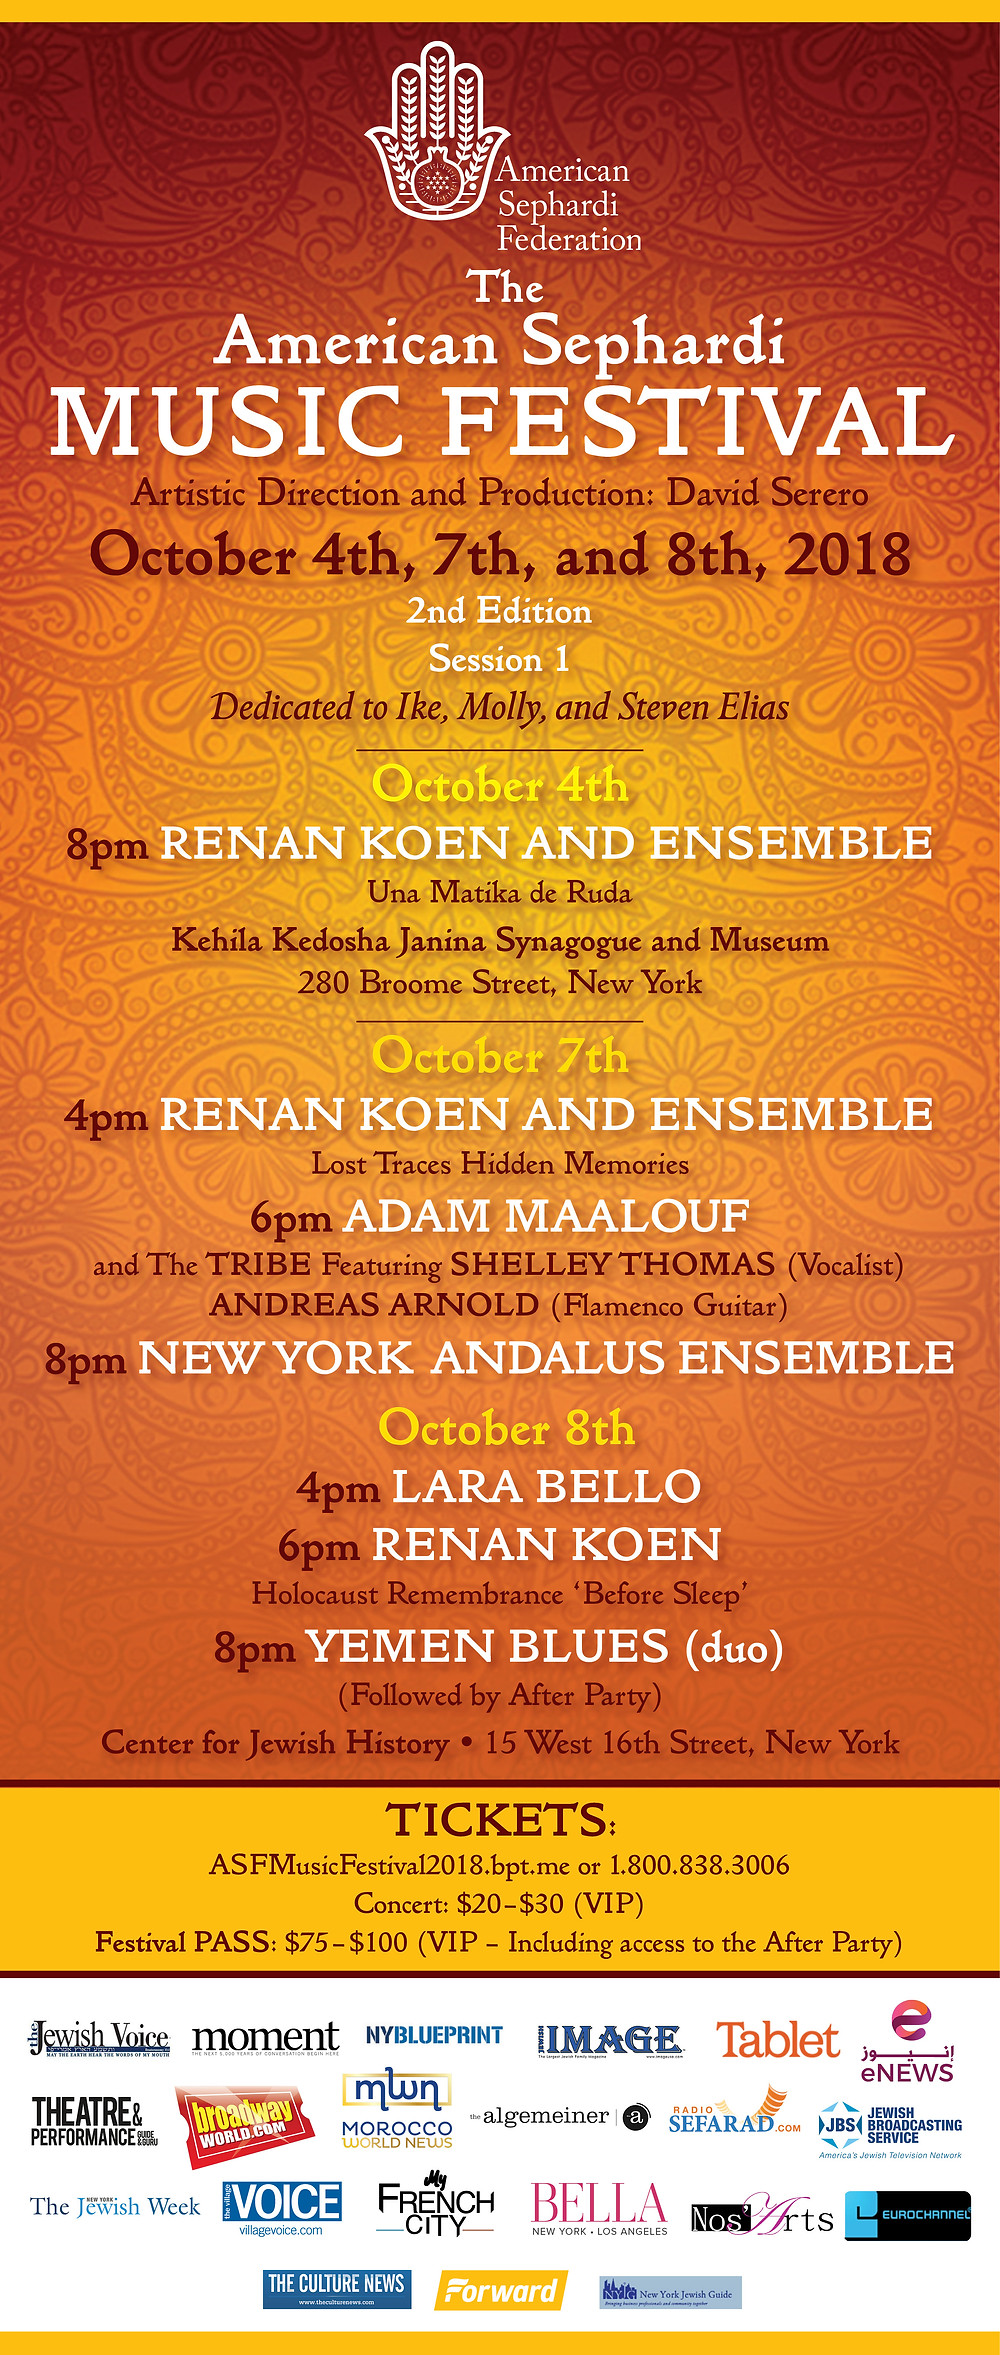 American Sephardi Music Festival - 2nd Edition